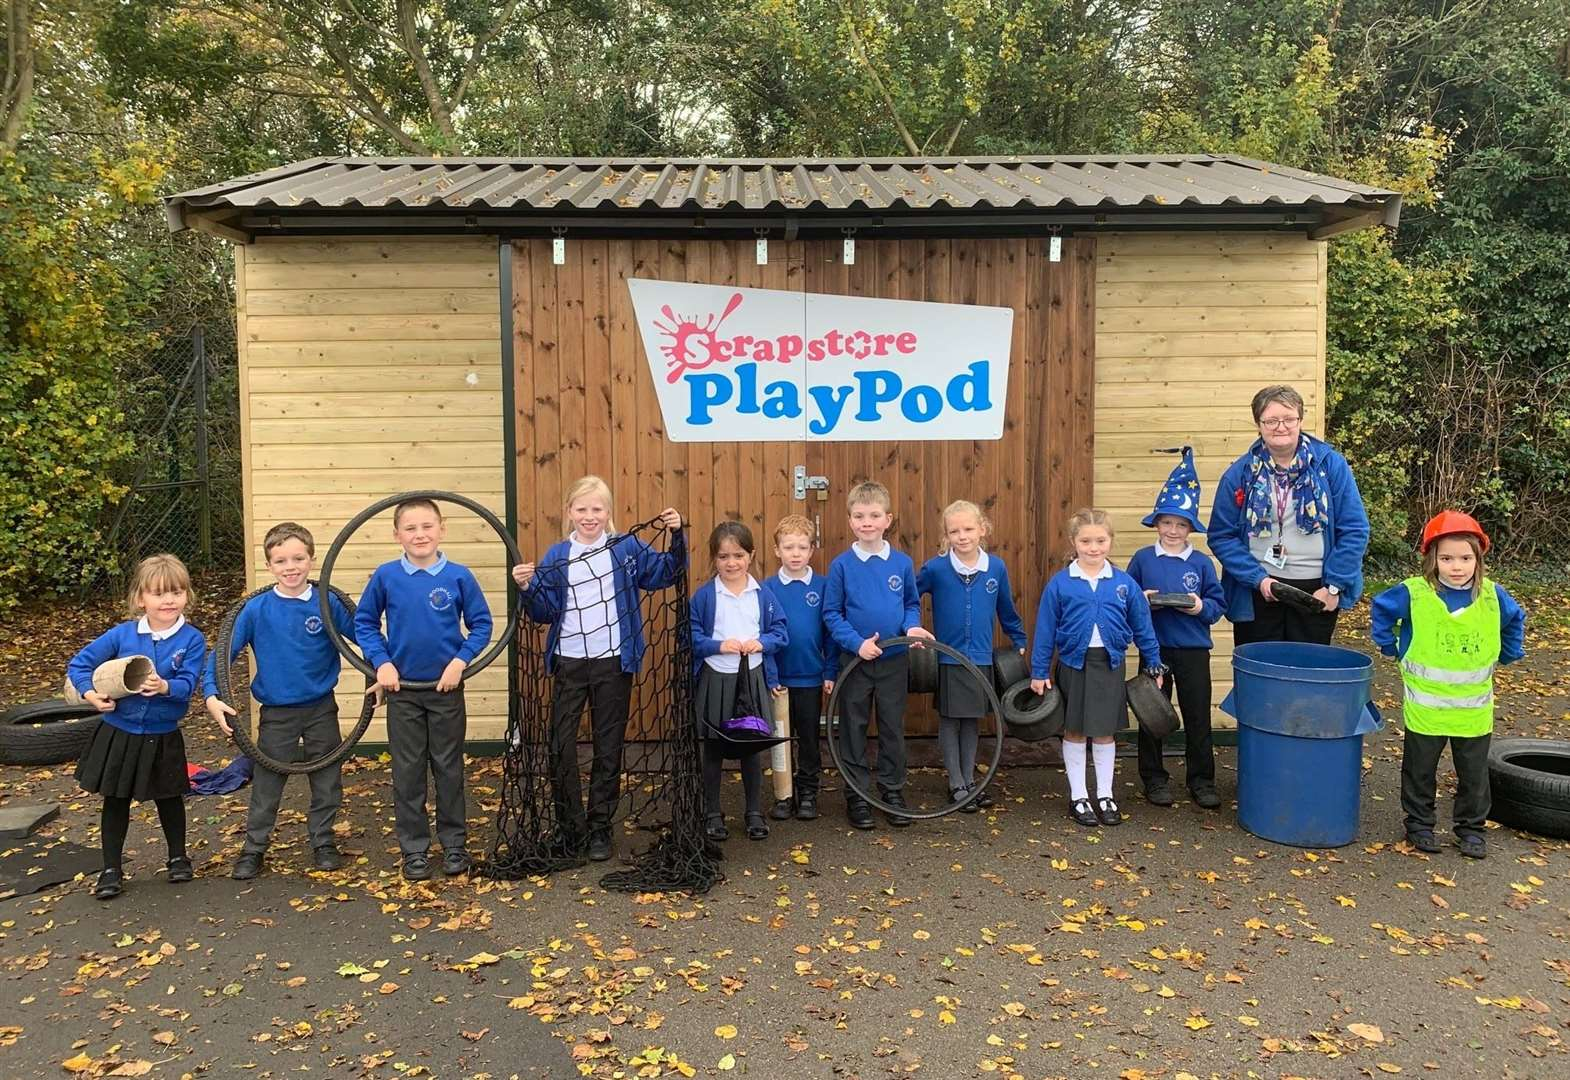 Recycling scheme launches at Sudbury school to raise pupil awareness